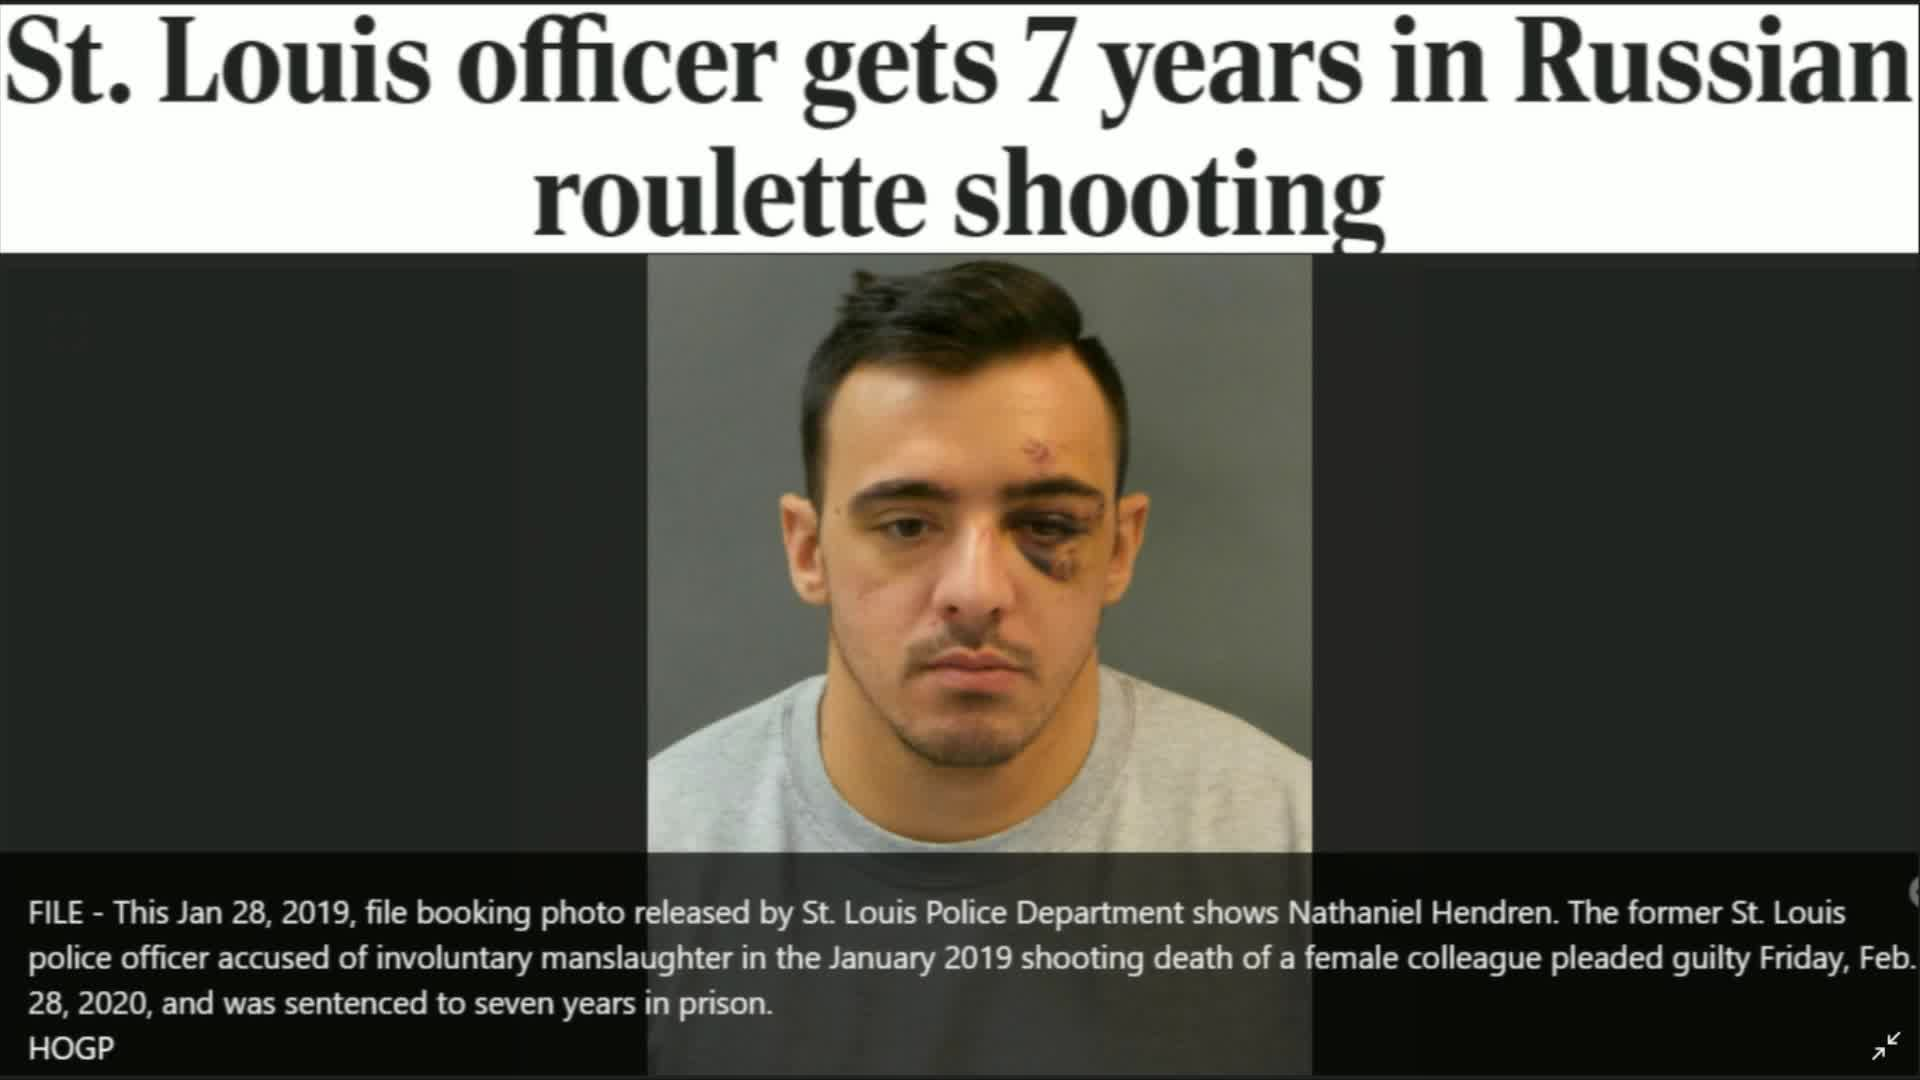 Saint Louis officer gets 7 years in Russian roulette shooting.